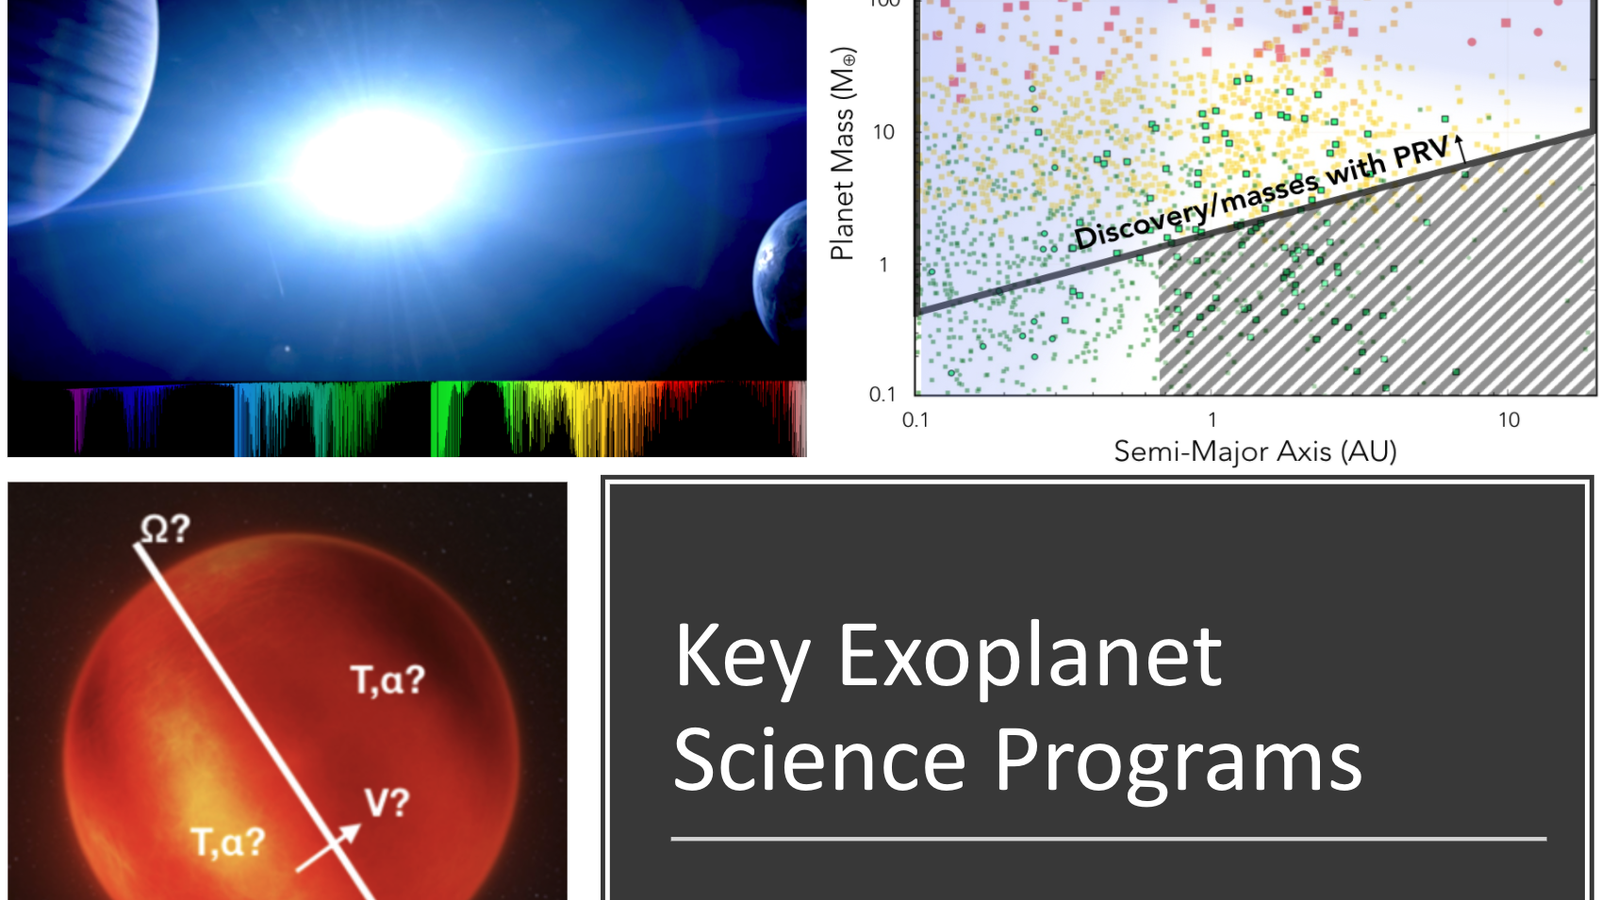 HISPEC exoplanets